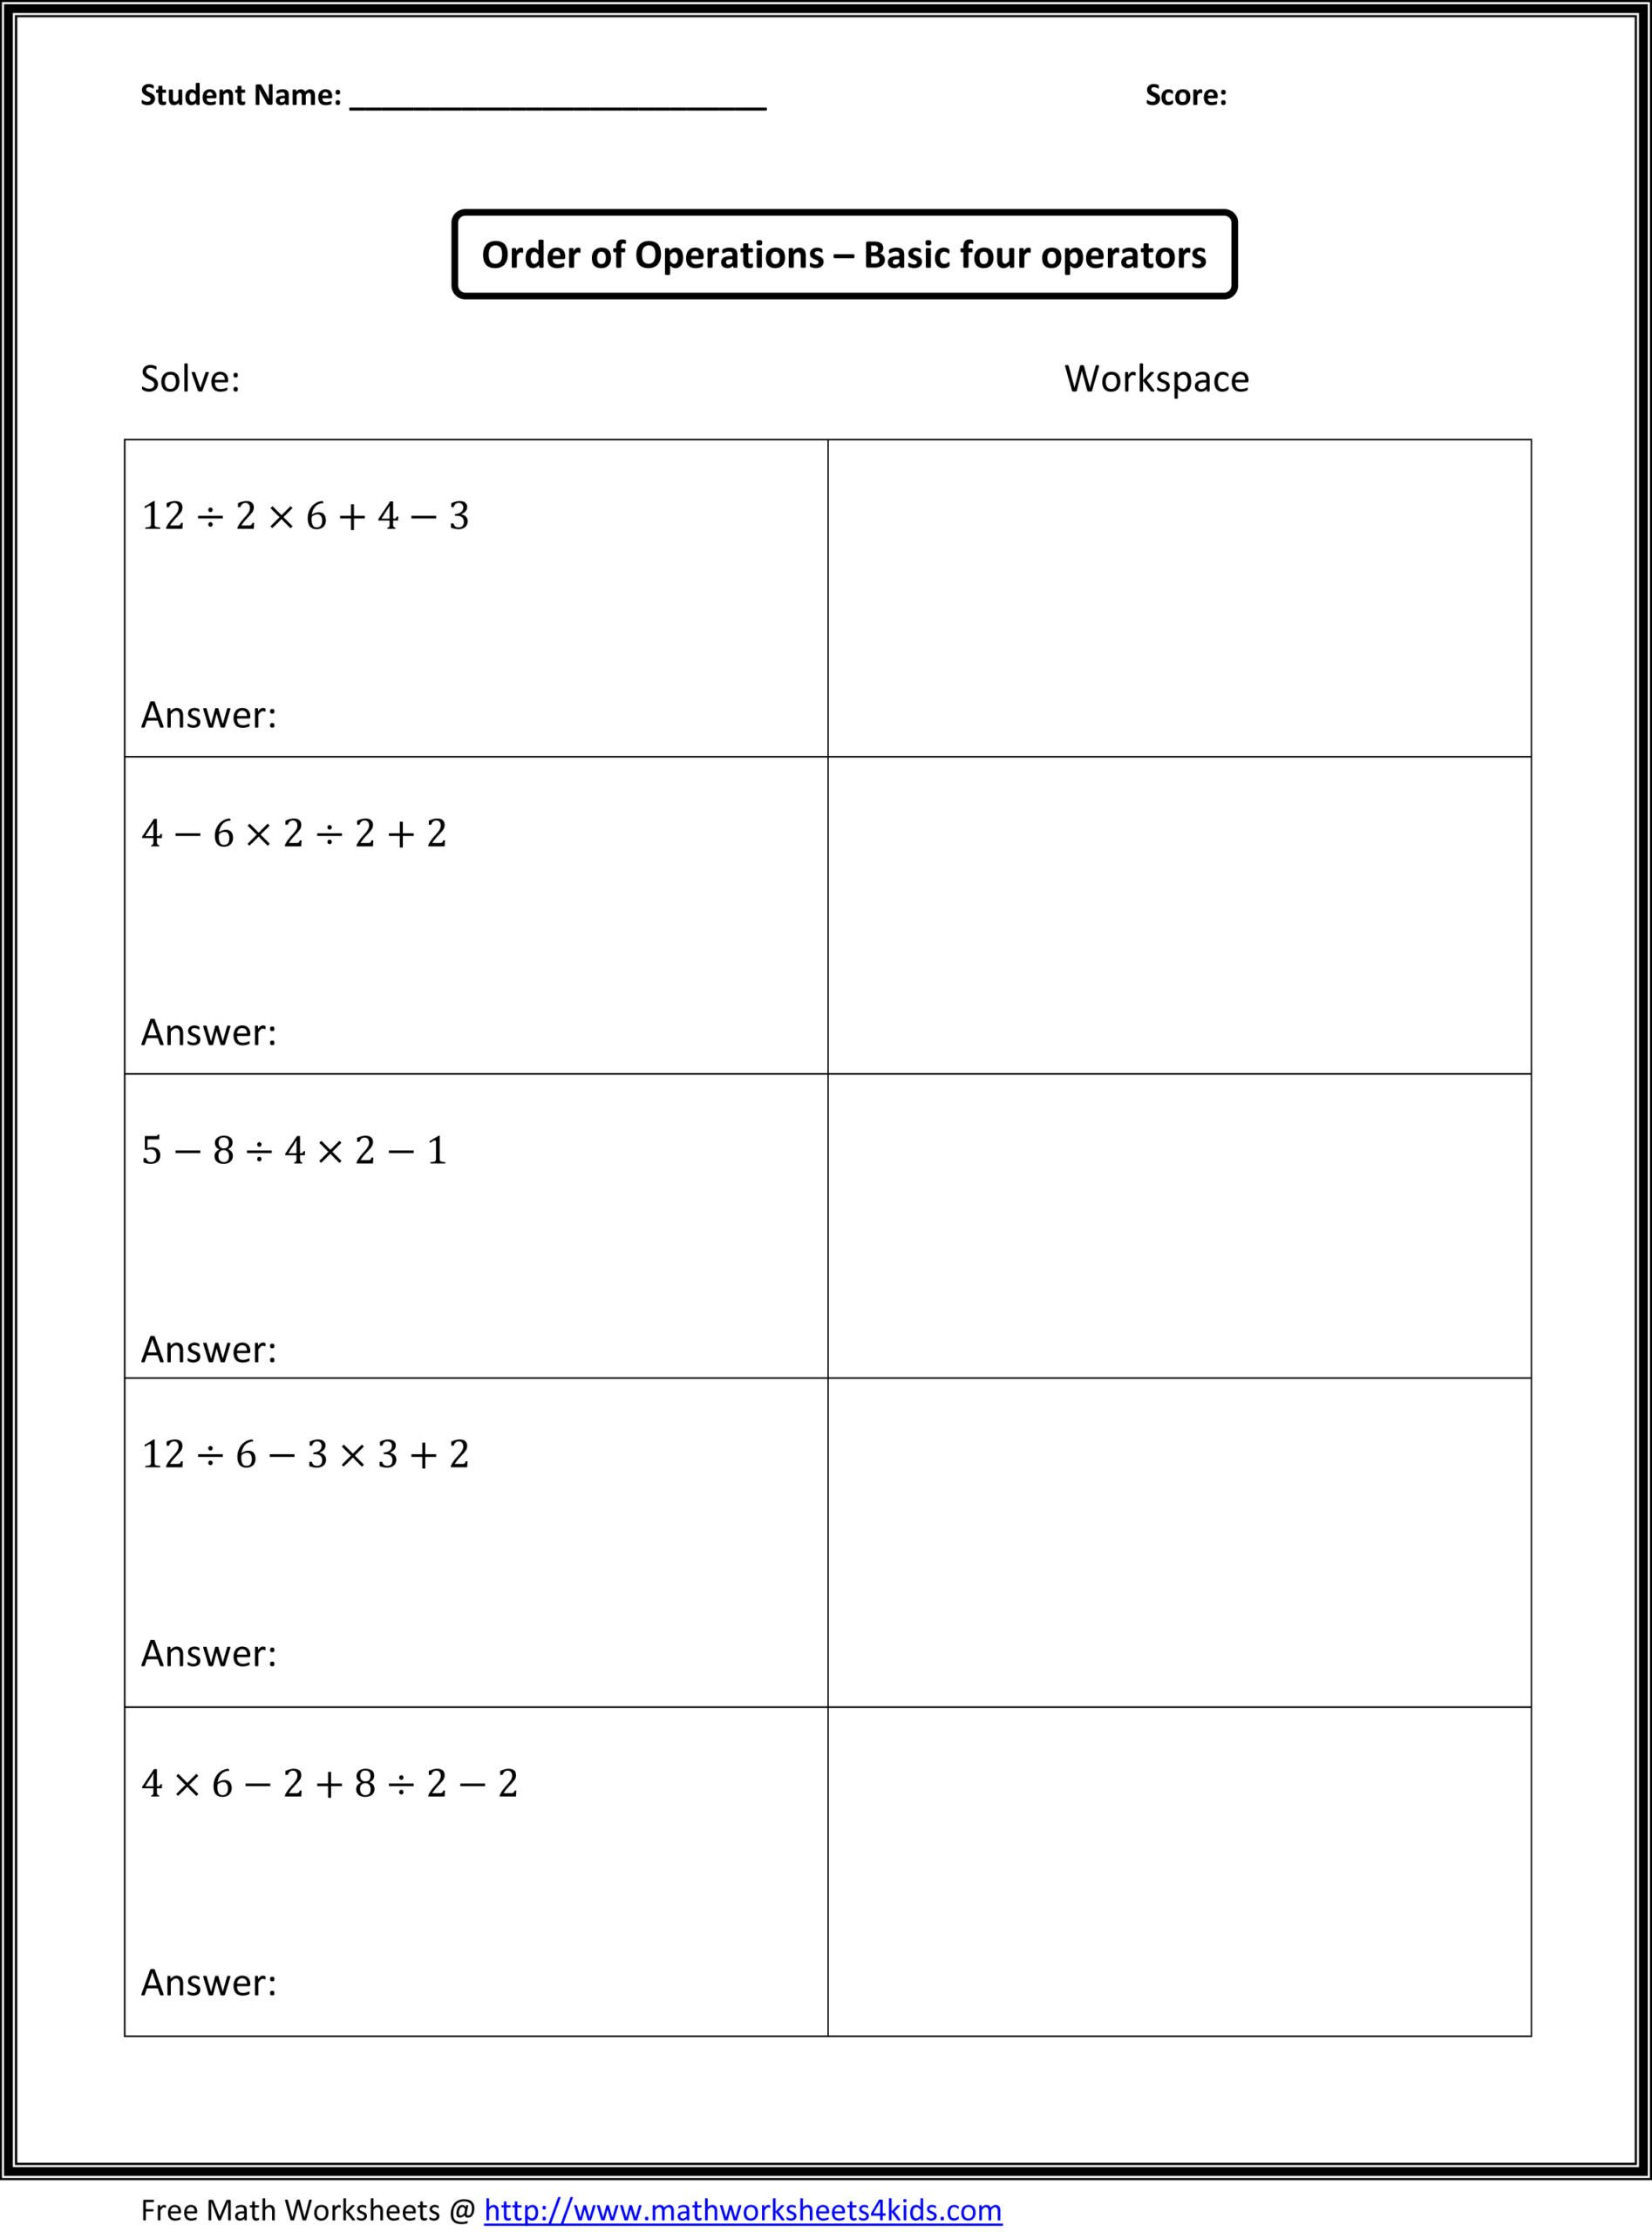 Ordered Pairs Worksheet 5th Grade Printable Coins for Teaching Ninja Coloring Pages Free